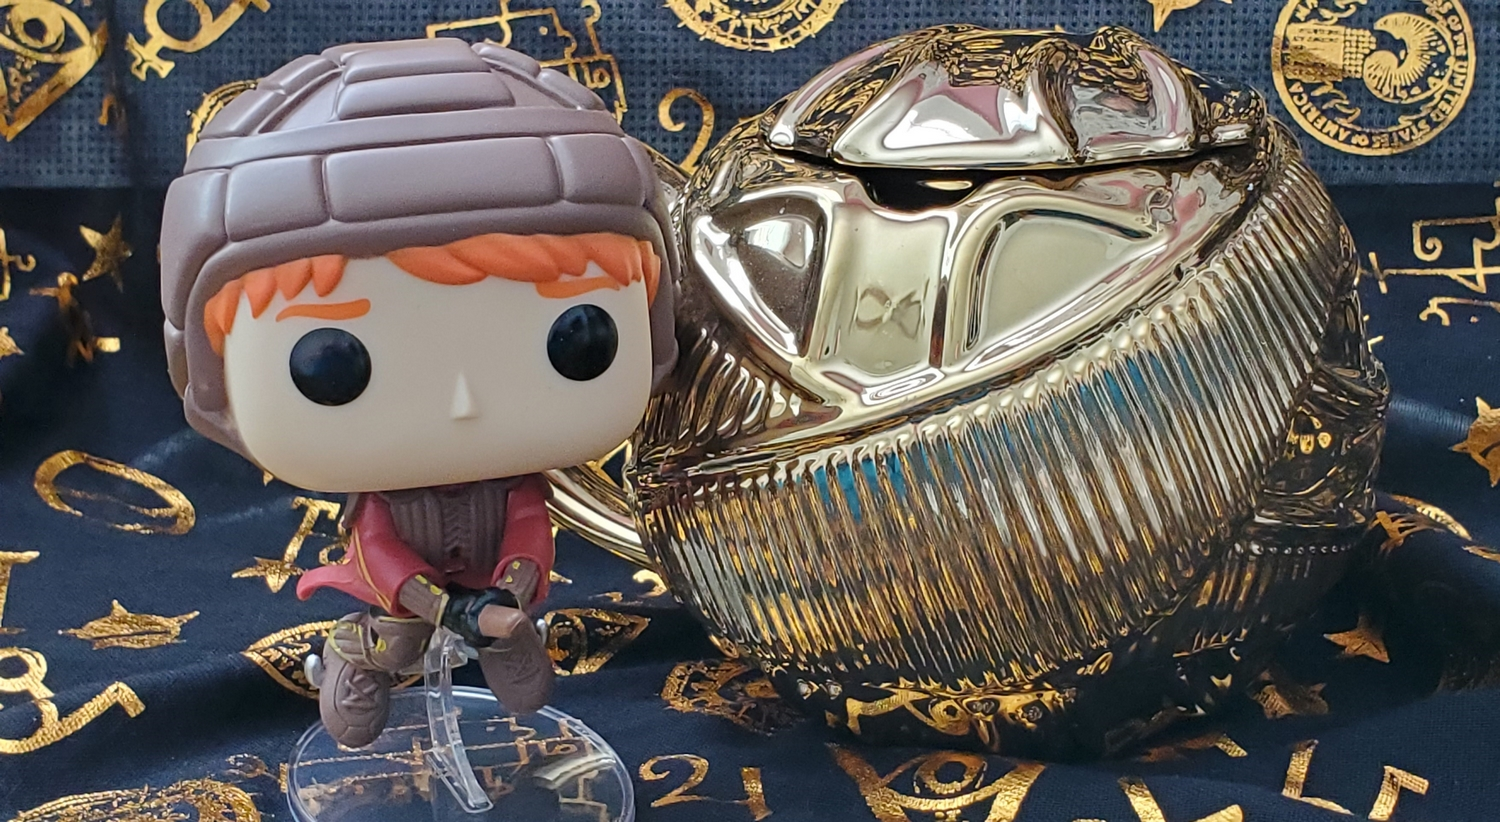 Ron Weasley Funko POP!, pictured with the Harry Potter Golden Snitch Coffee Mug from Hallmark Gold Crown